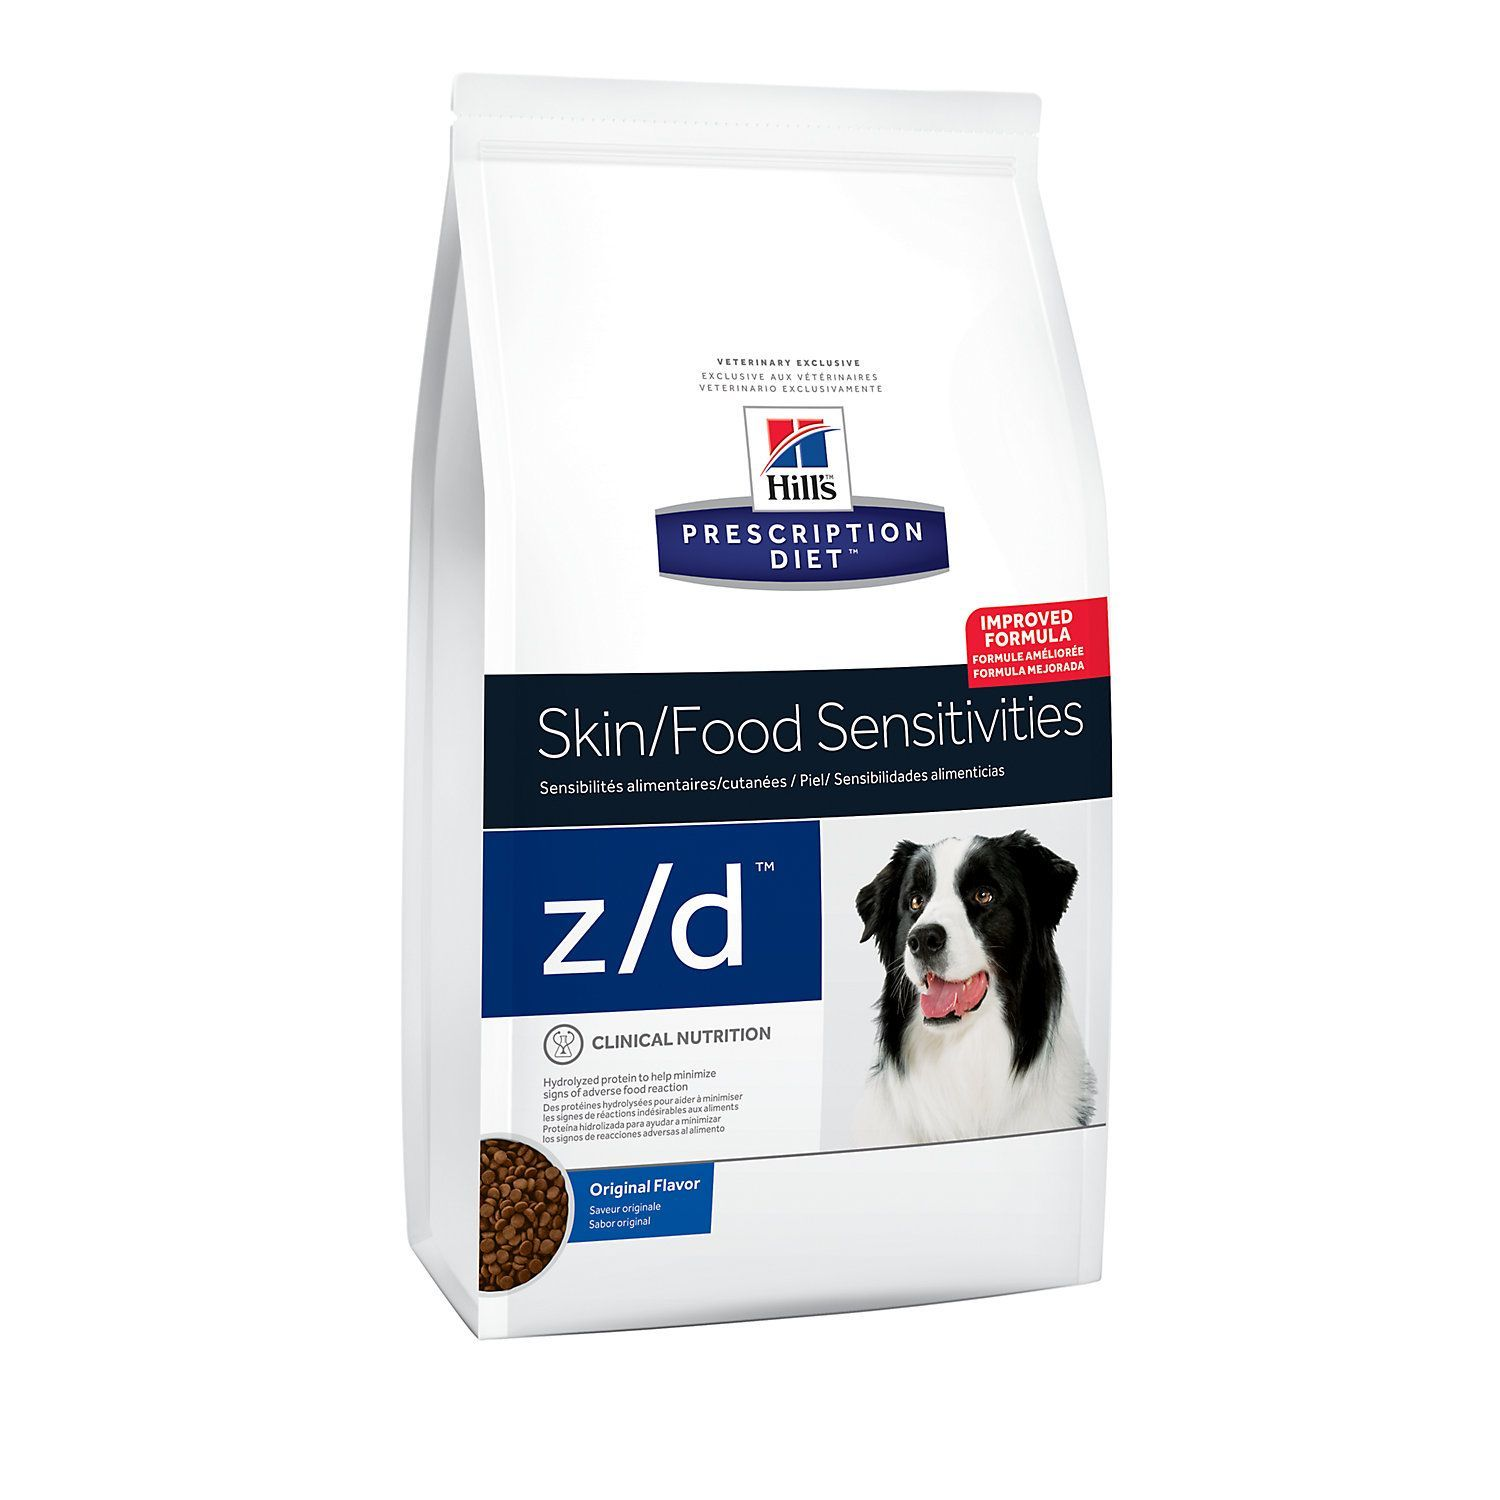 Hill's Prescription Diet z/d Skin/Food Sensitivities